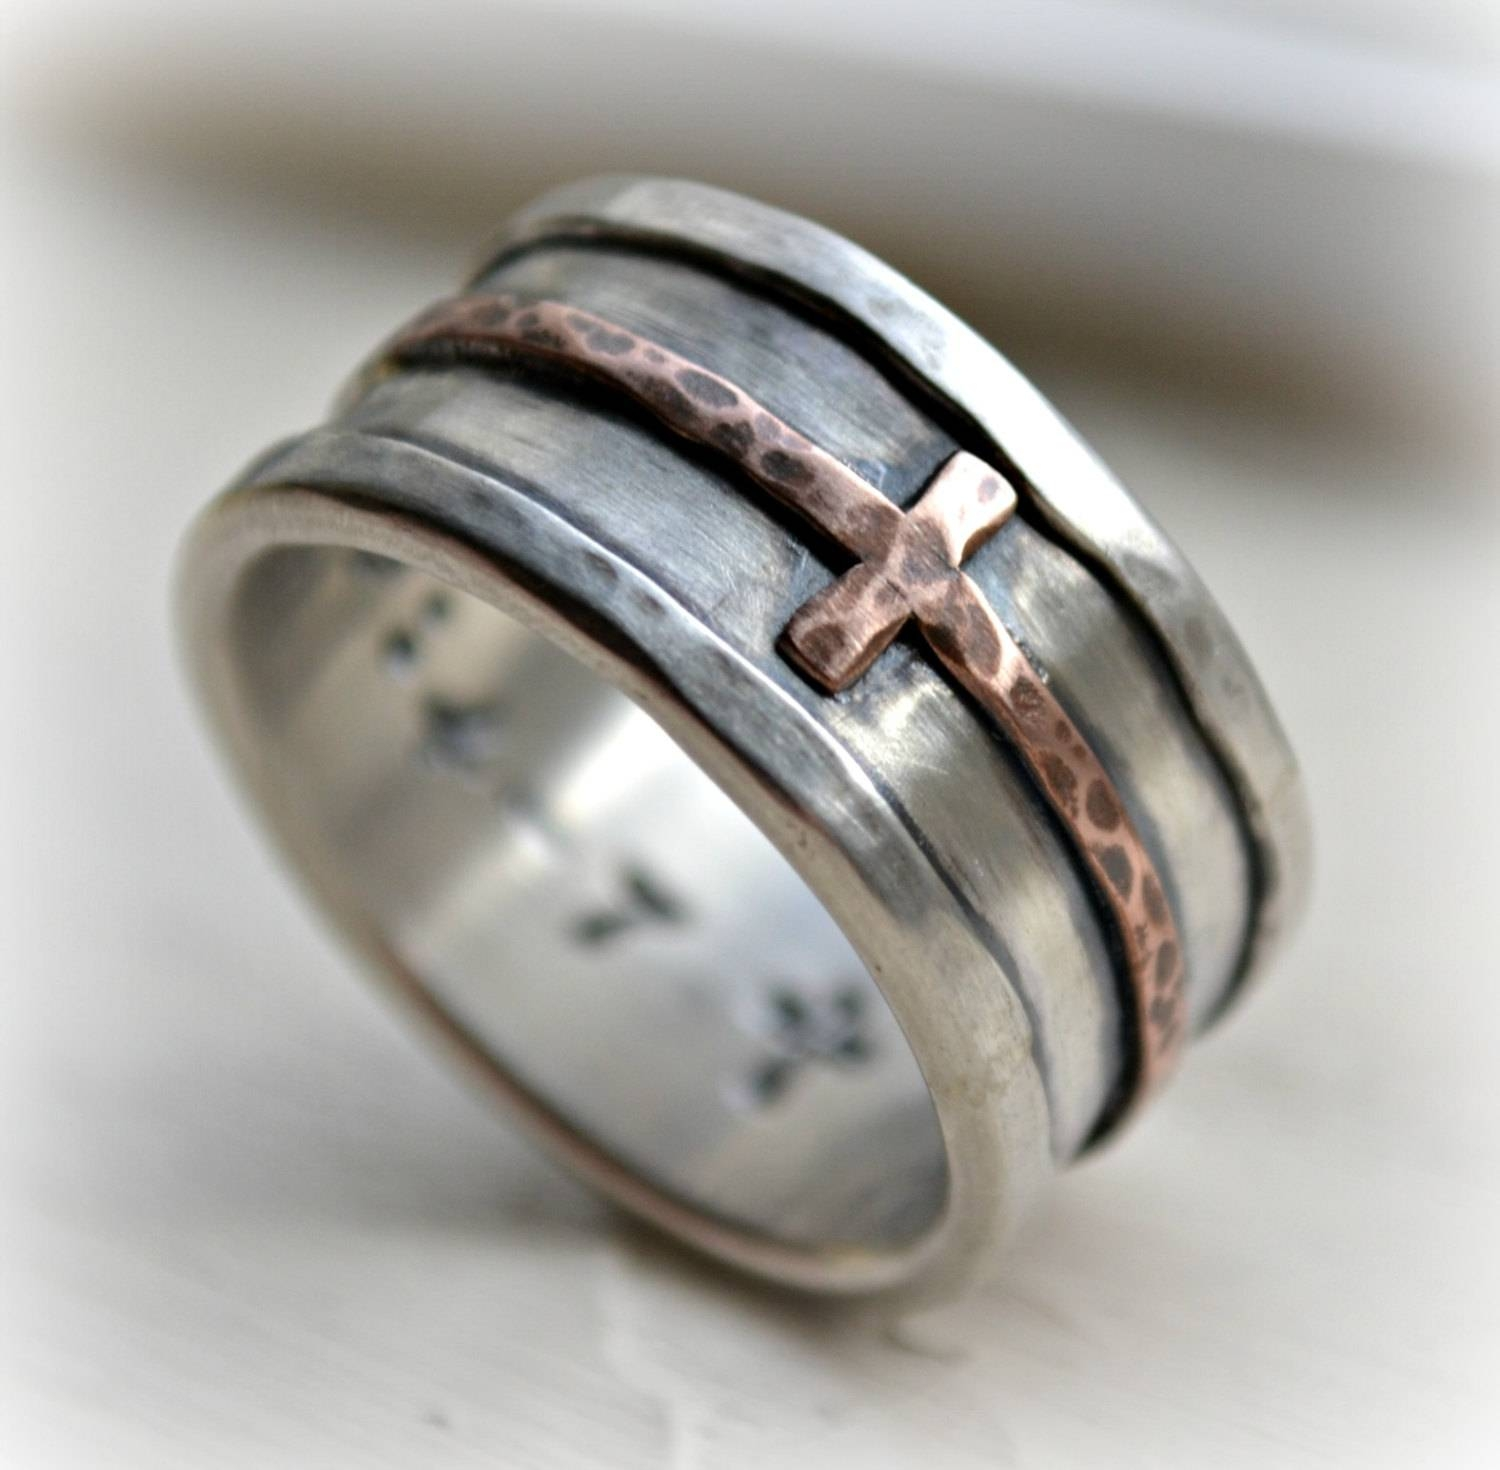 Mens Cross Wedding Band Rustic Hammered Cross Ring Oxidized Intended For Mens Handmade Wedding Bands (View 4 of 15)